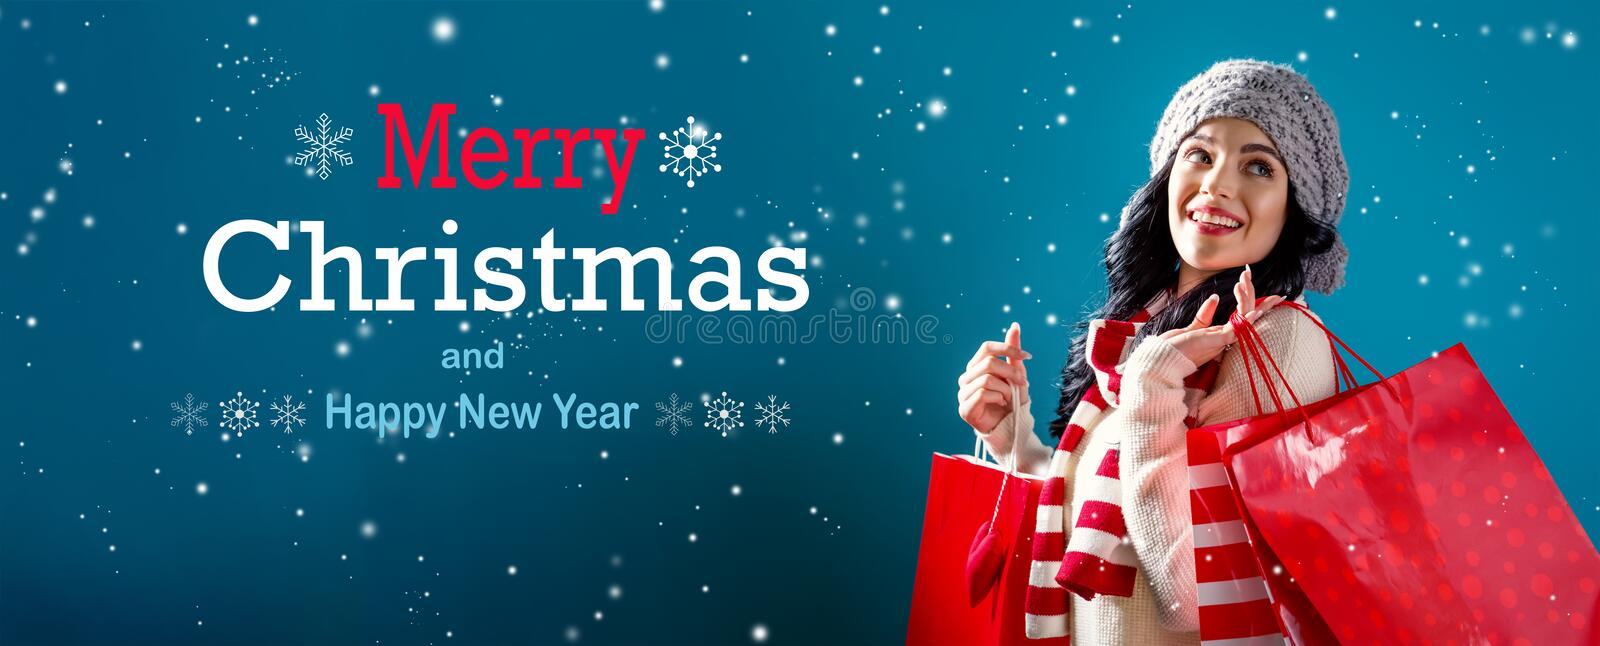 Merry Christmas and Happy New Year message with woman holding shopping bags stock images